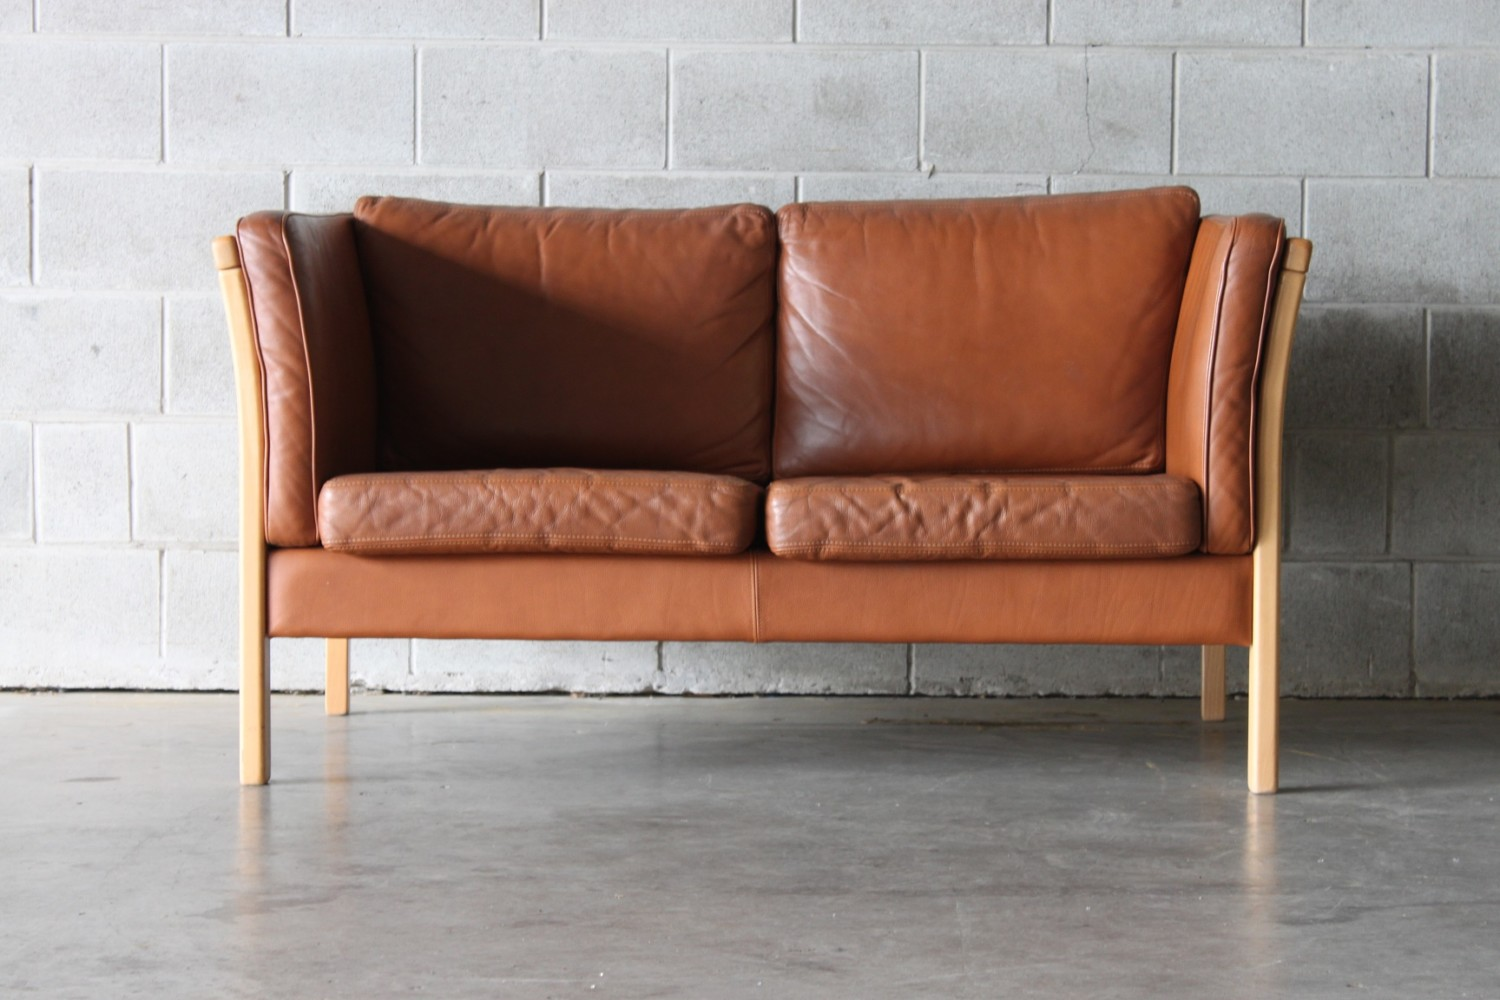 2 seater sofa new zealand john peters sofas hull tan leather the vintage shop